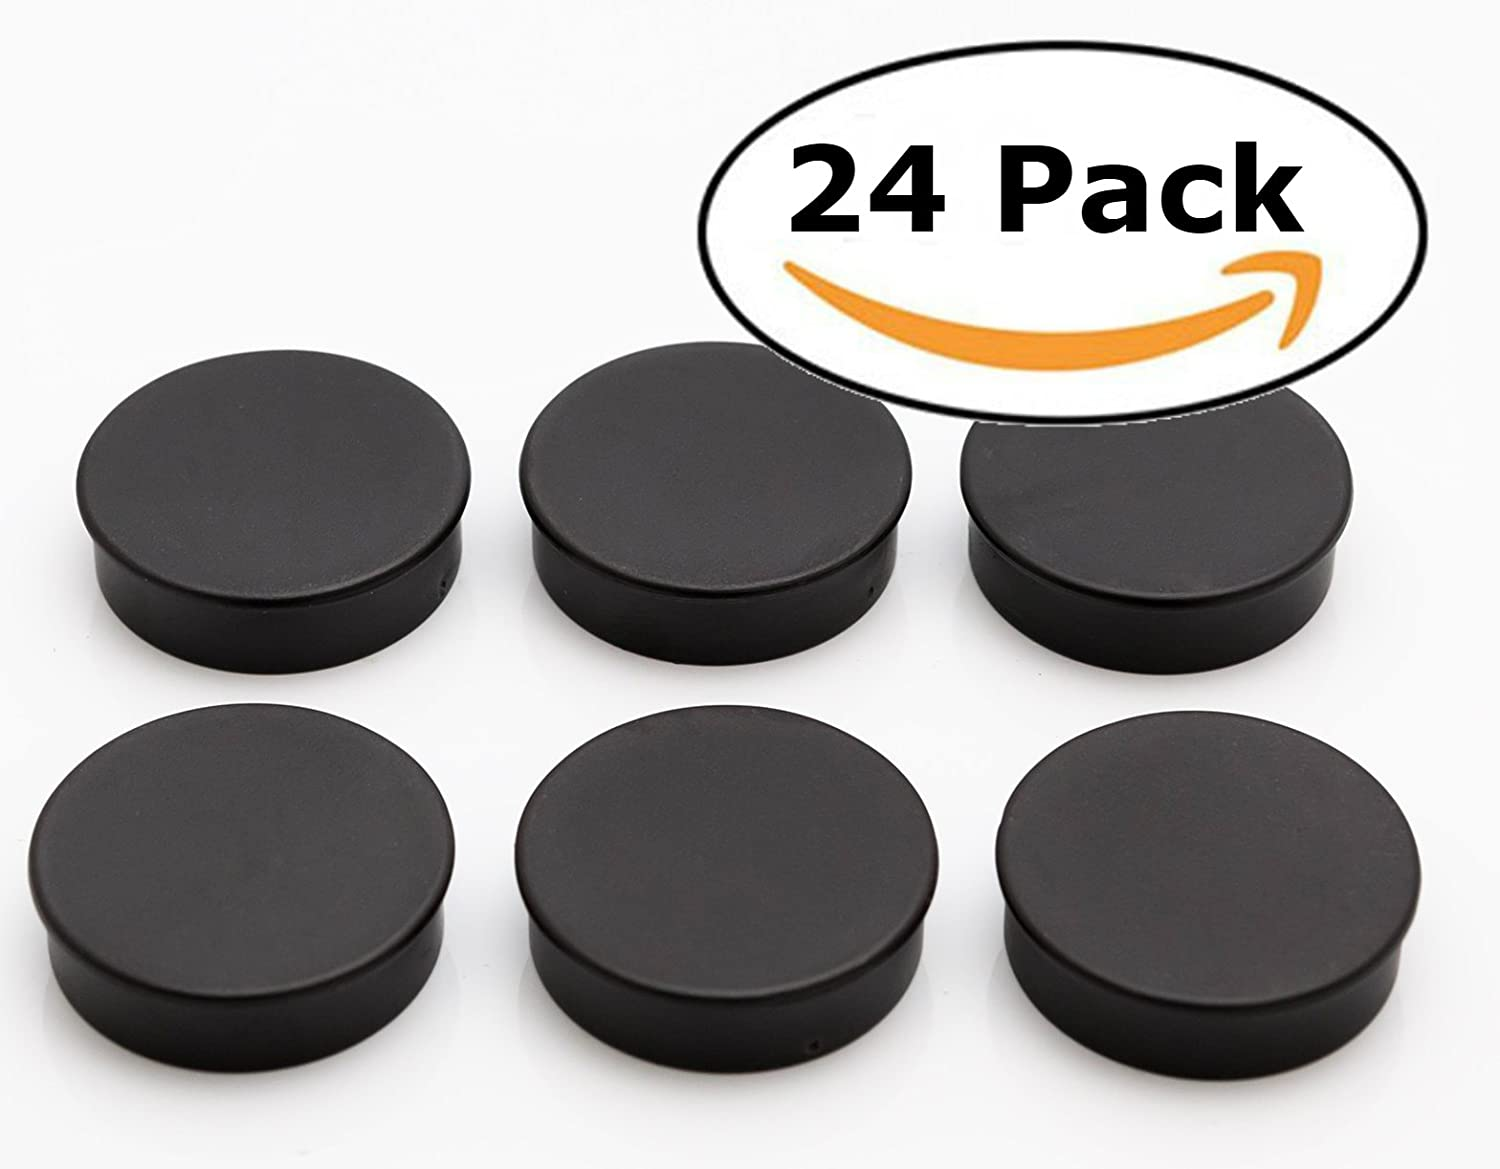 Bullseye Office Magnets (24 Pack) - Black Round, Refrigerator Magnets - Perfect as Whiteboards, Lockers, or Fridge Magnets [Black]